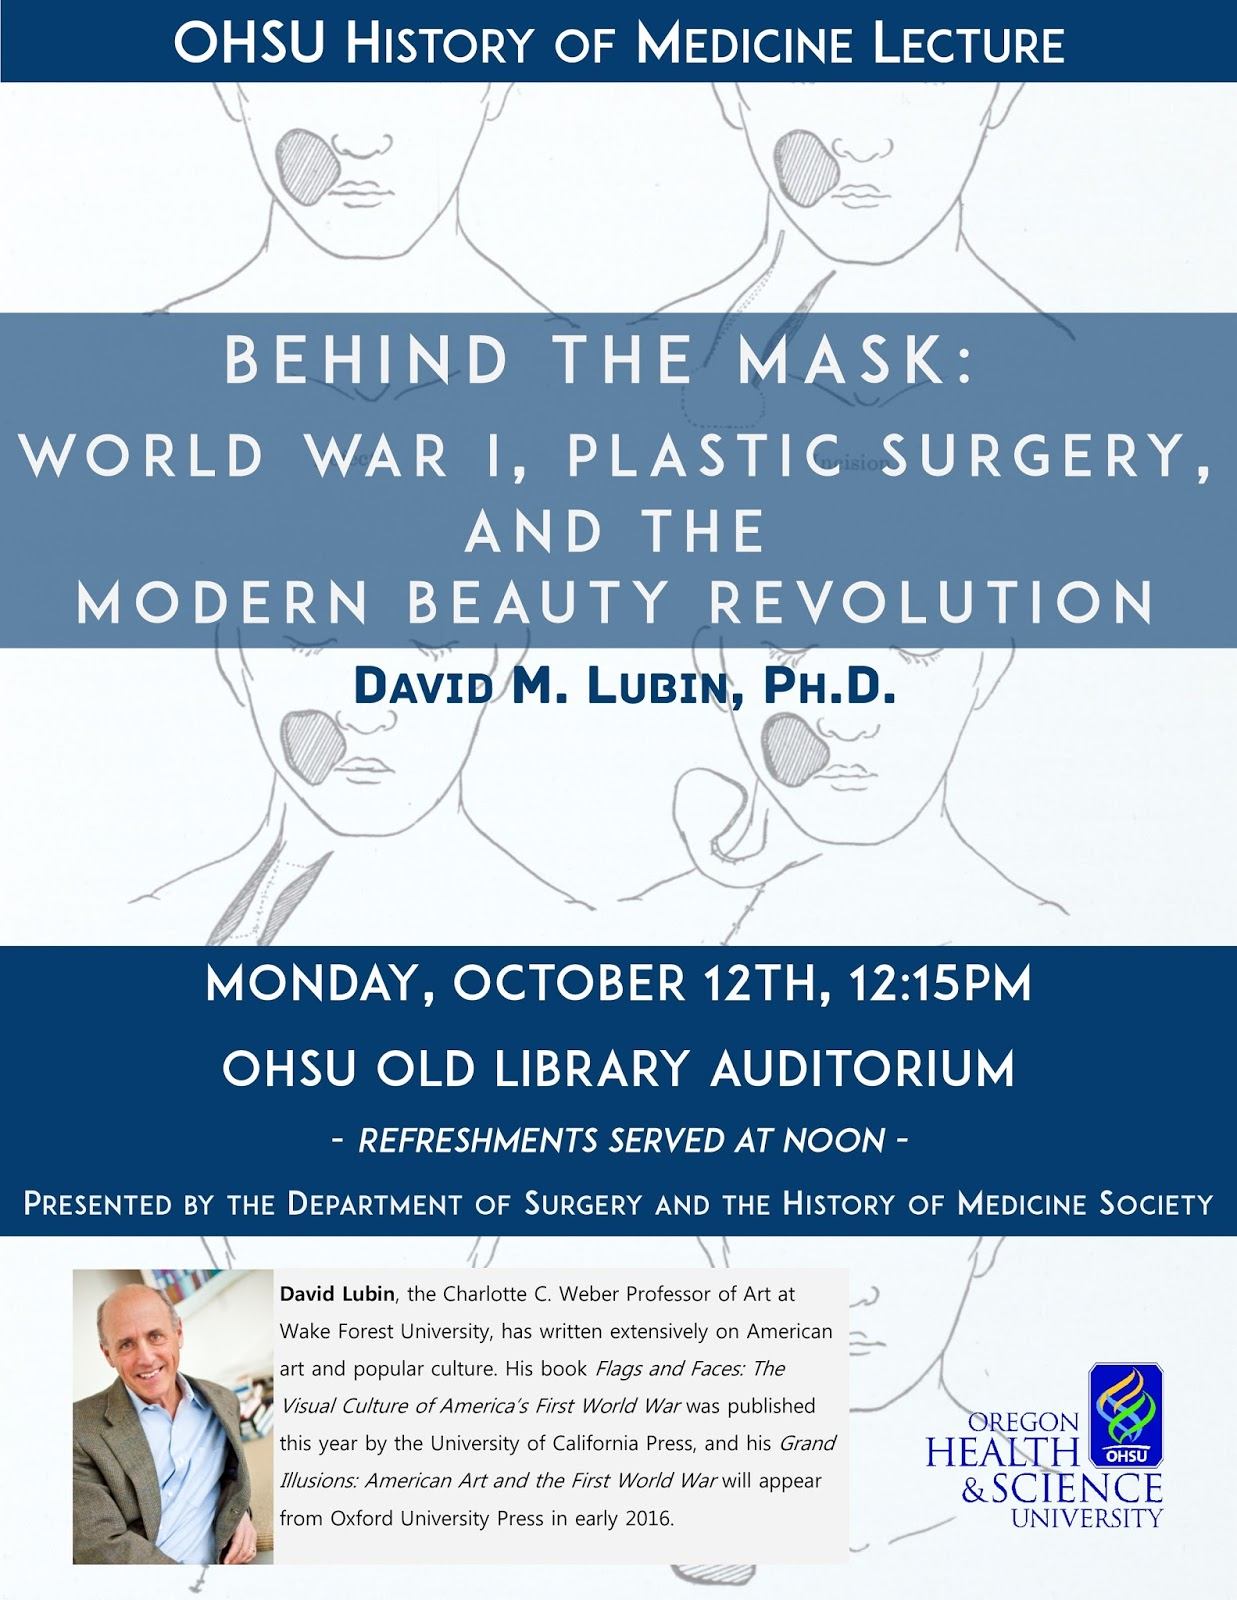 Behind the mask world war i plastic surgery and the modern beauty